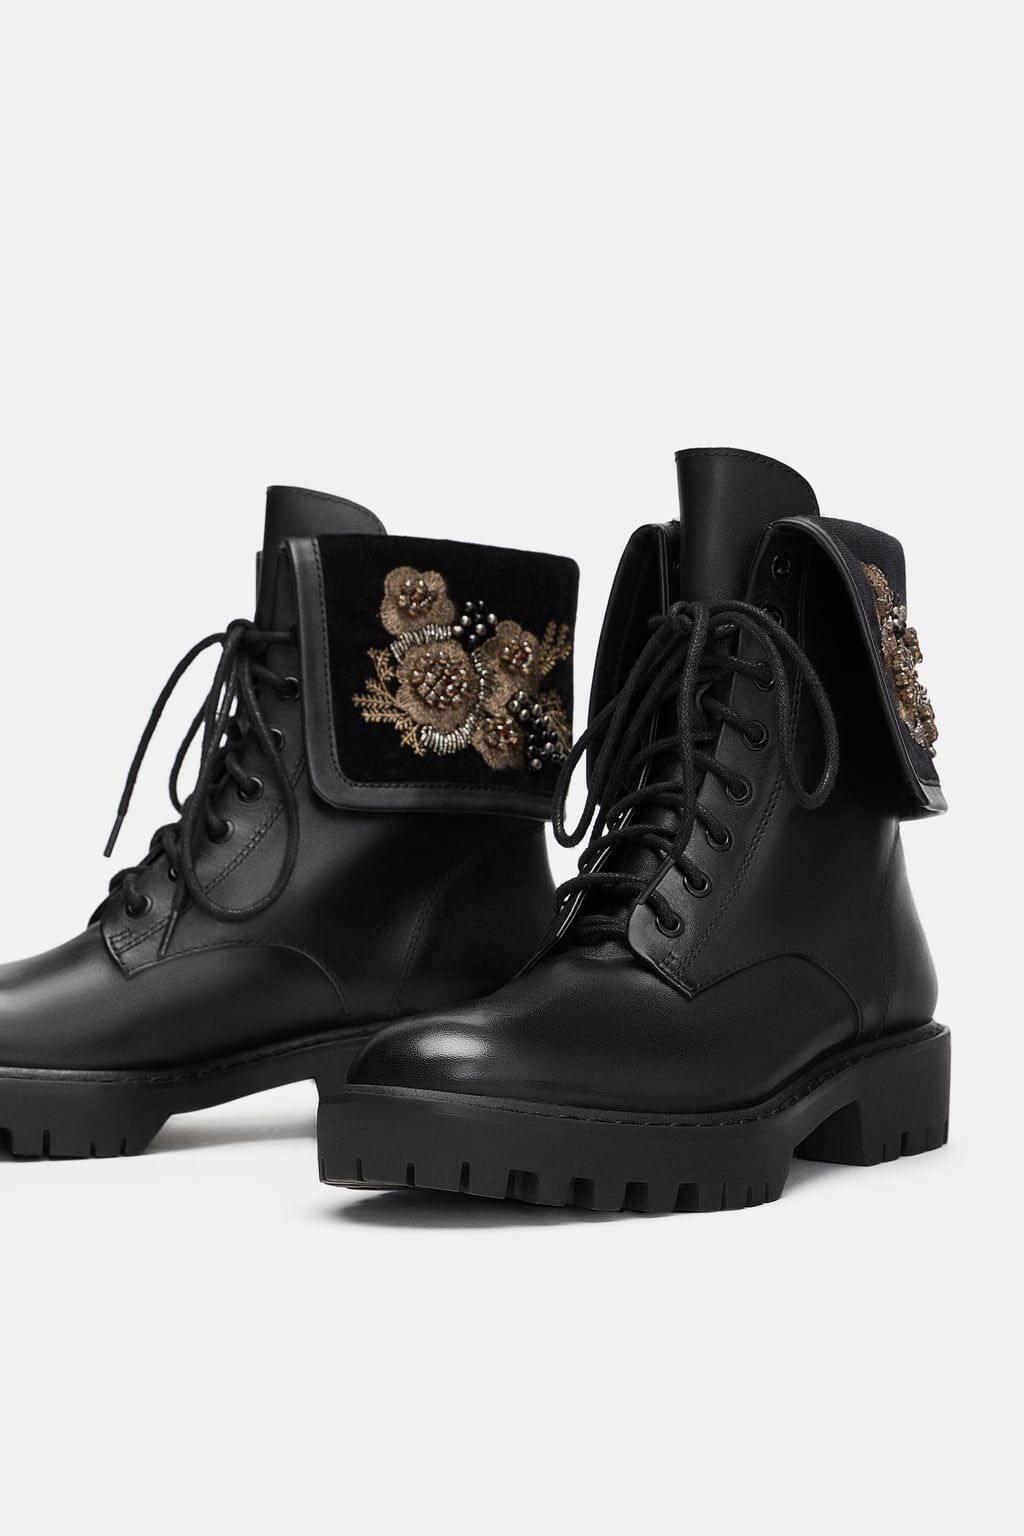 b45f93b24b2 Image 5 of LEATHER BIKER ANKLE BOOTS WITH EMBROIDERED DETAILS from ...